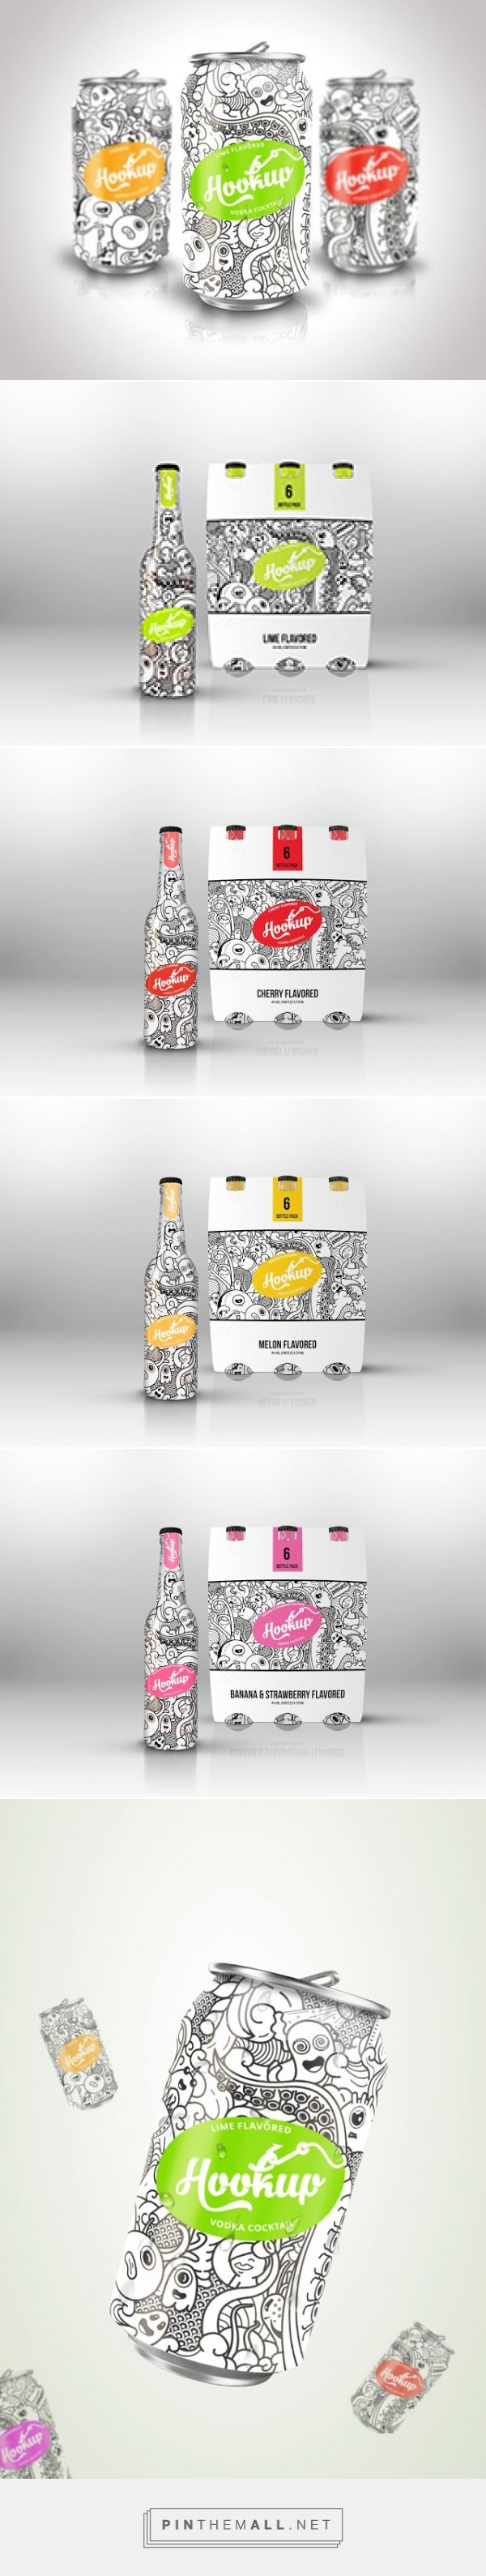 HookUp alcoholic cocktails by Brandid. Pin curated by #SFields99 #packaging #design